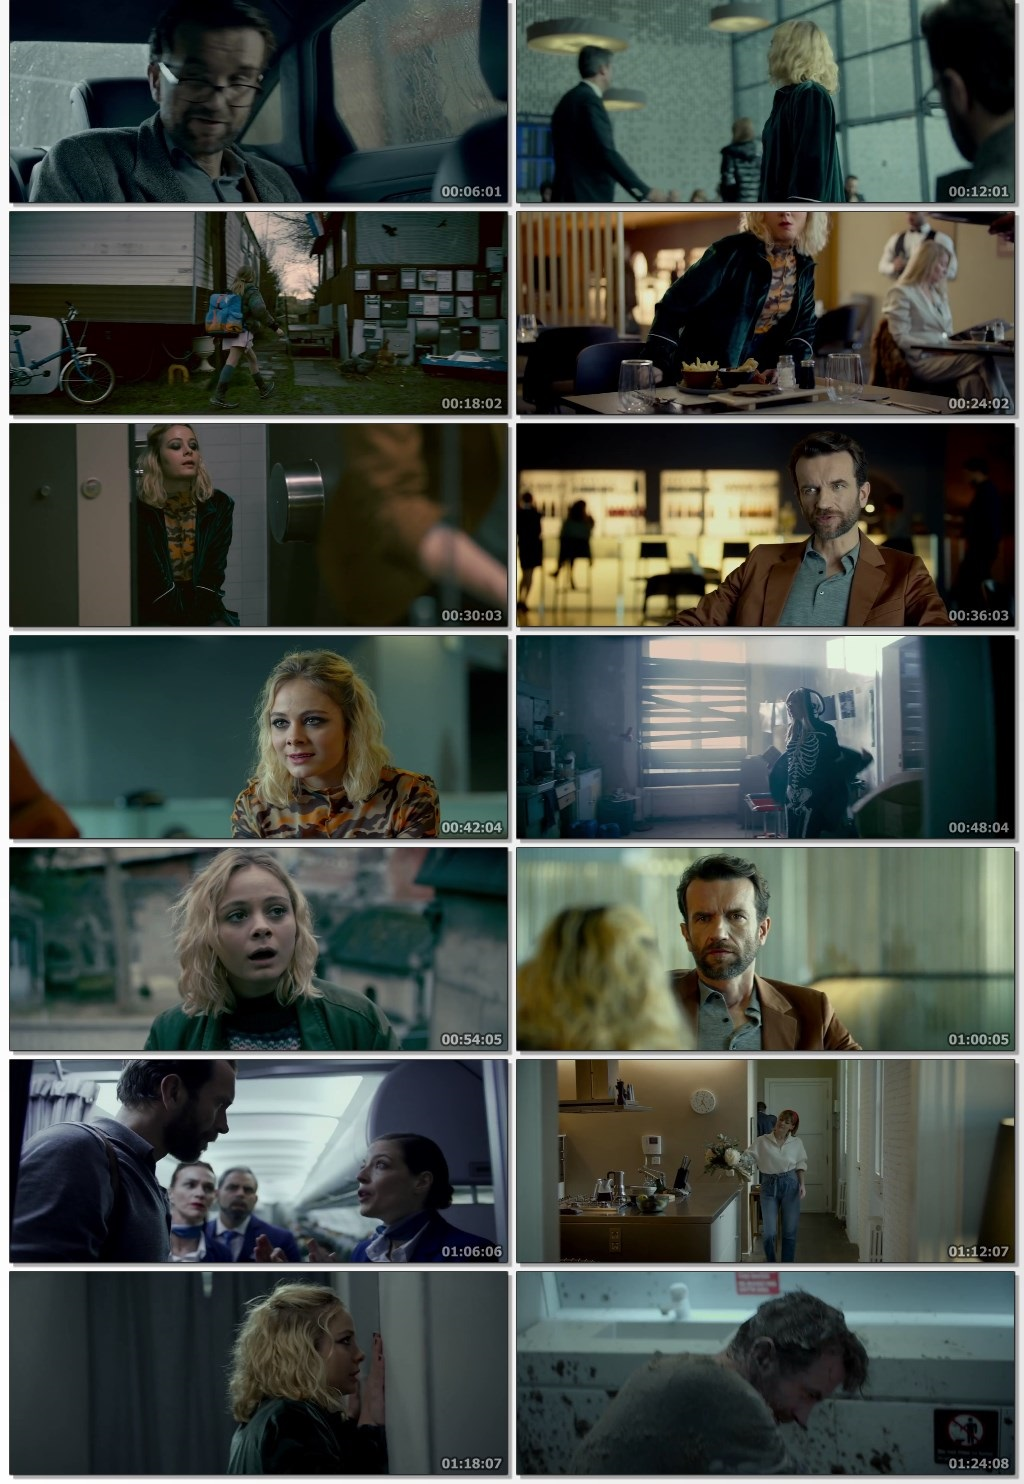 A-Perfect-Enemy-2021-www-9kmovies-cards-English-Movie-720p-HDRip-800-MB-mkv-thumbsfc4c302550113fe7